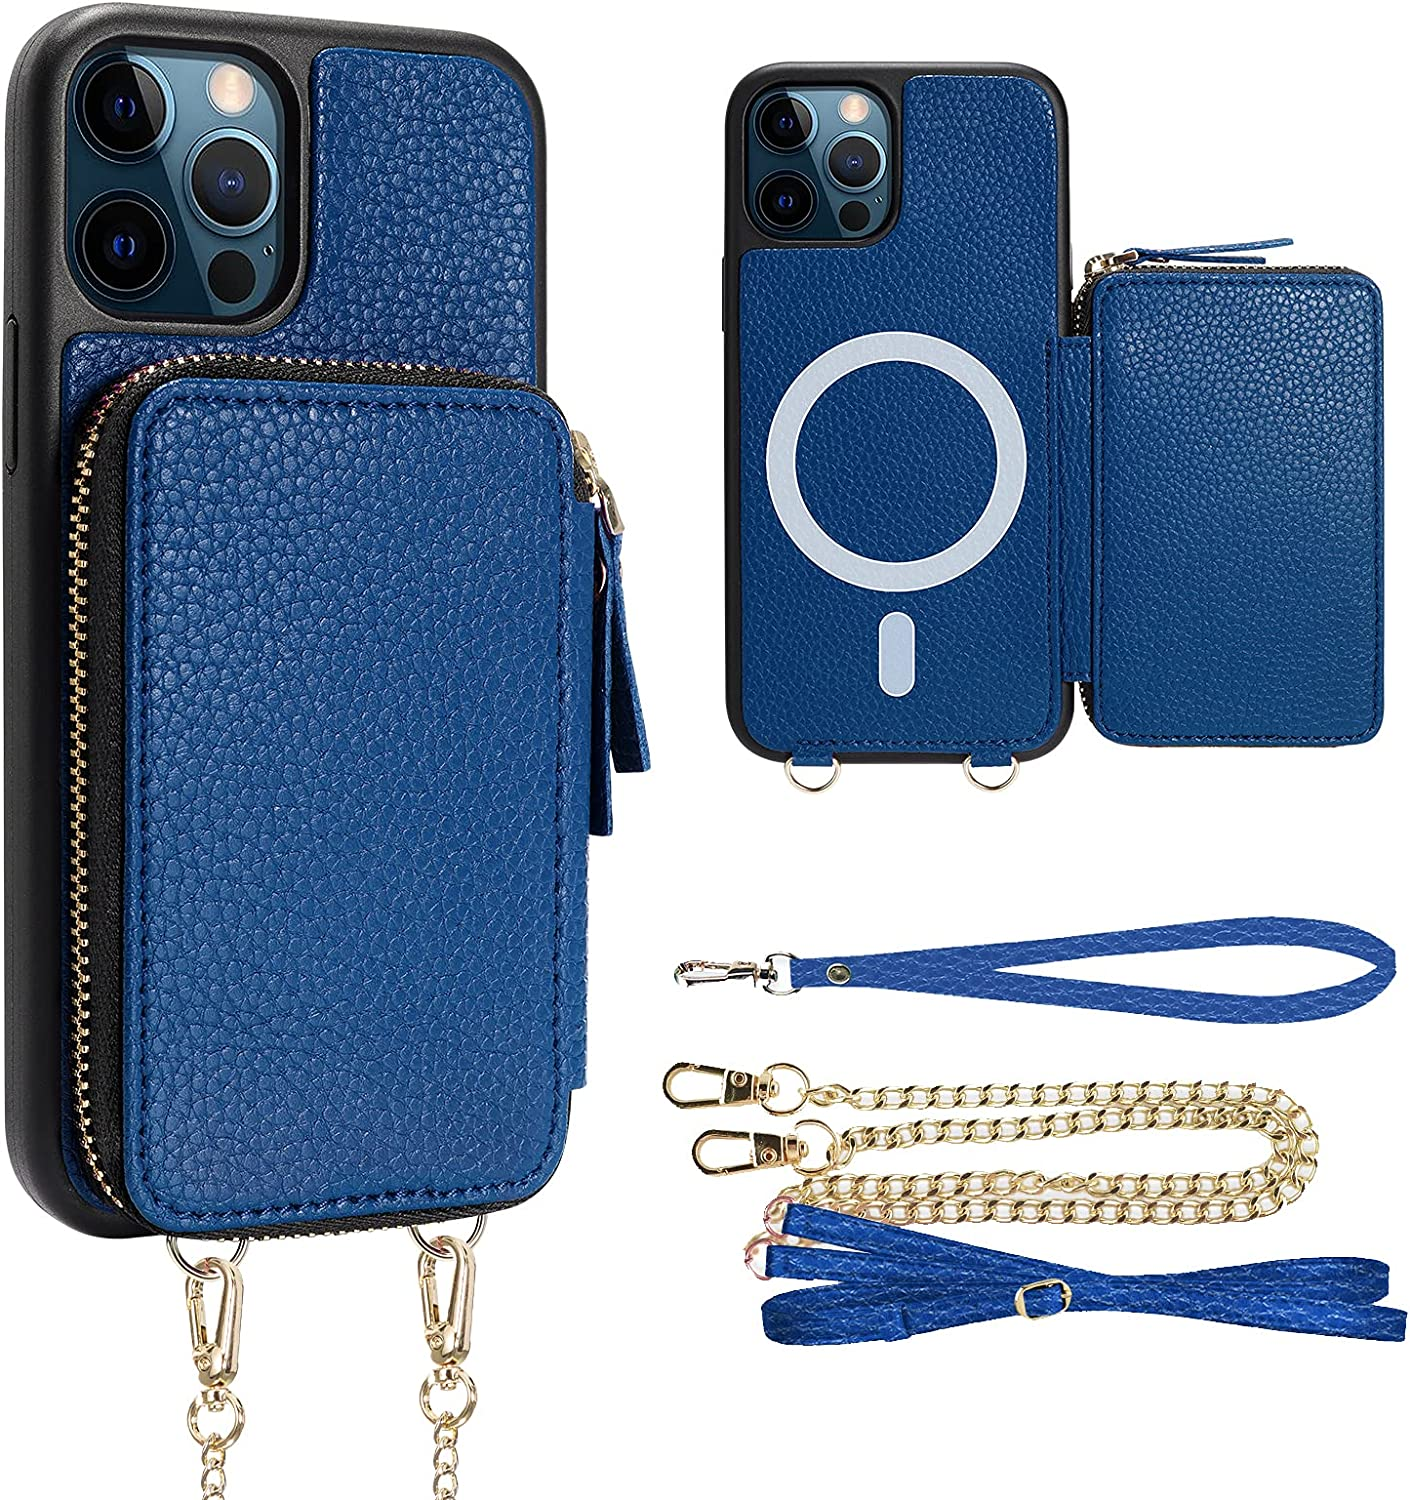 ZVE iPhone 12 Pro Magnetic Wallet Case with Magsafe Charging for Women, iPhone 12 Card Holder Leather Crossbody Purse Cover Present with Wrist Strap for iPhone 12/12 Pro, 6.1 inch-Navy Blue